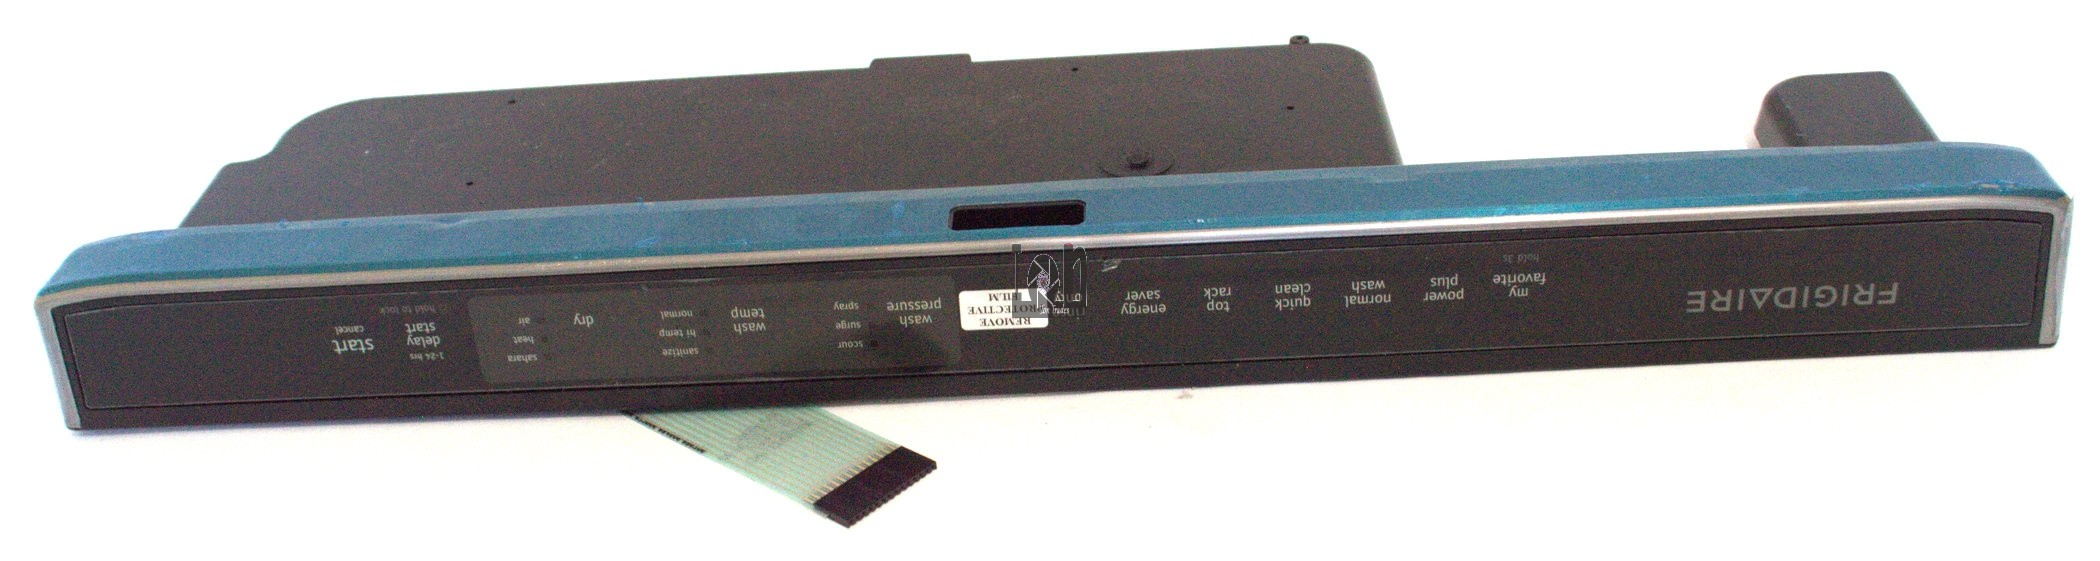 Frigidaire Dishwasher Touchpad and Control Panel 5304496526